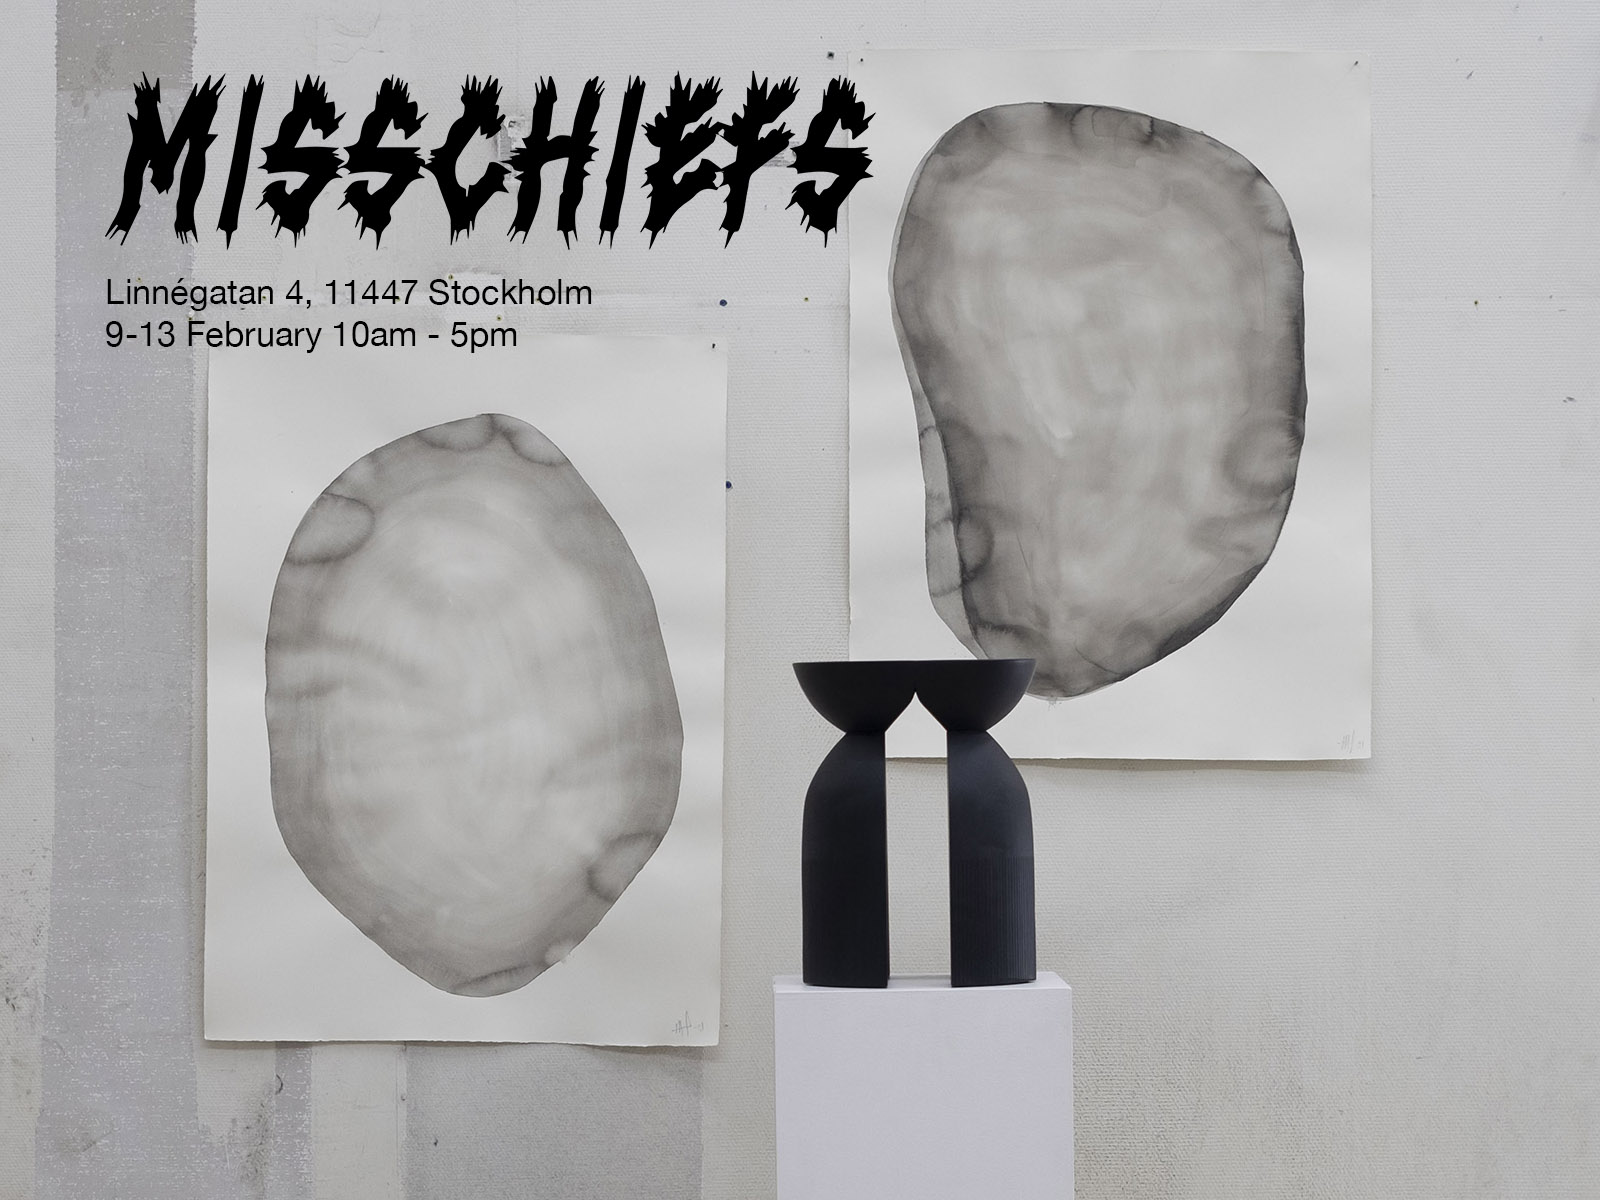 Misschiefs Exhibition Stockholm Design Week - Showing the first prototype of the newly released Unity Stool and ink inspiration paintings